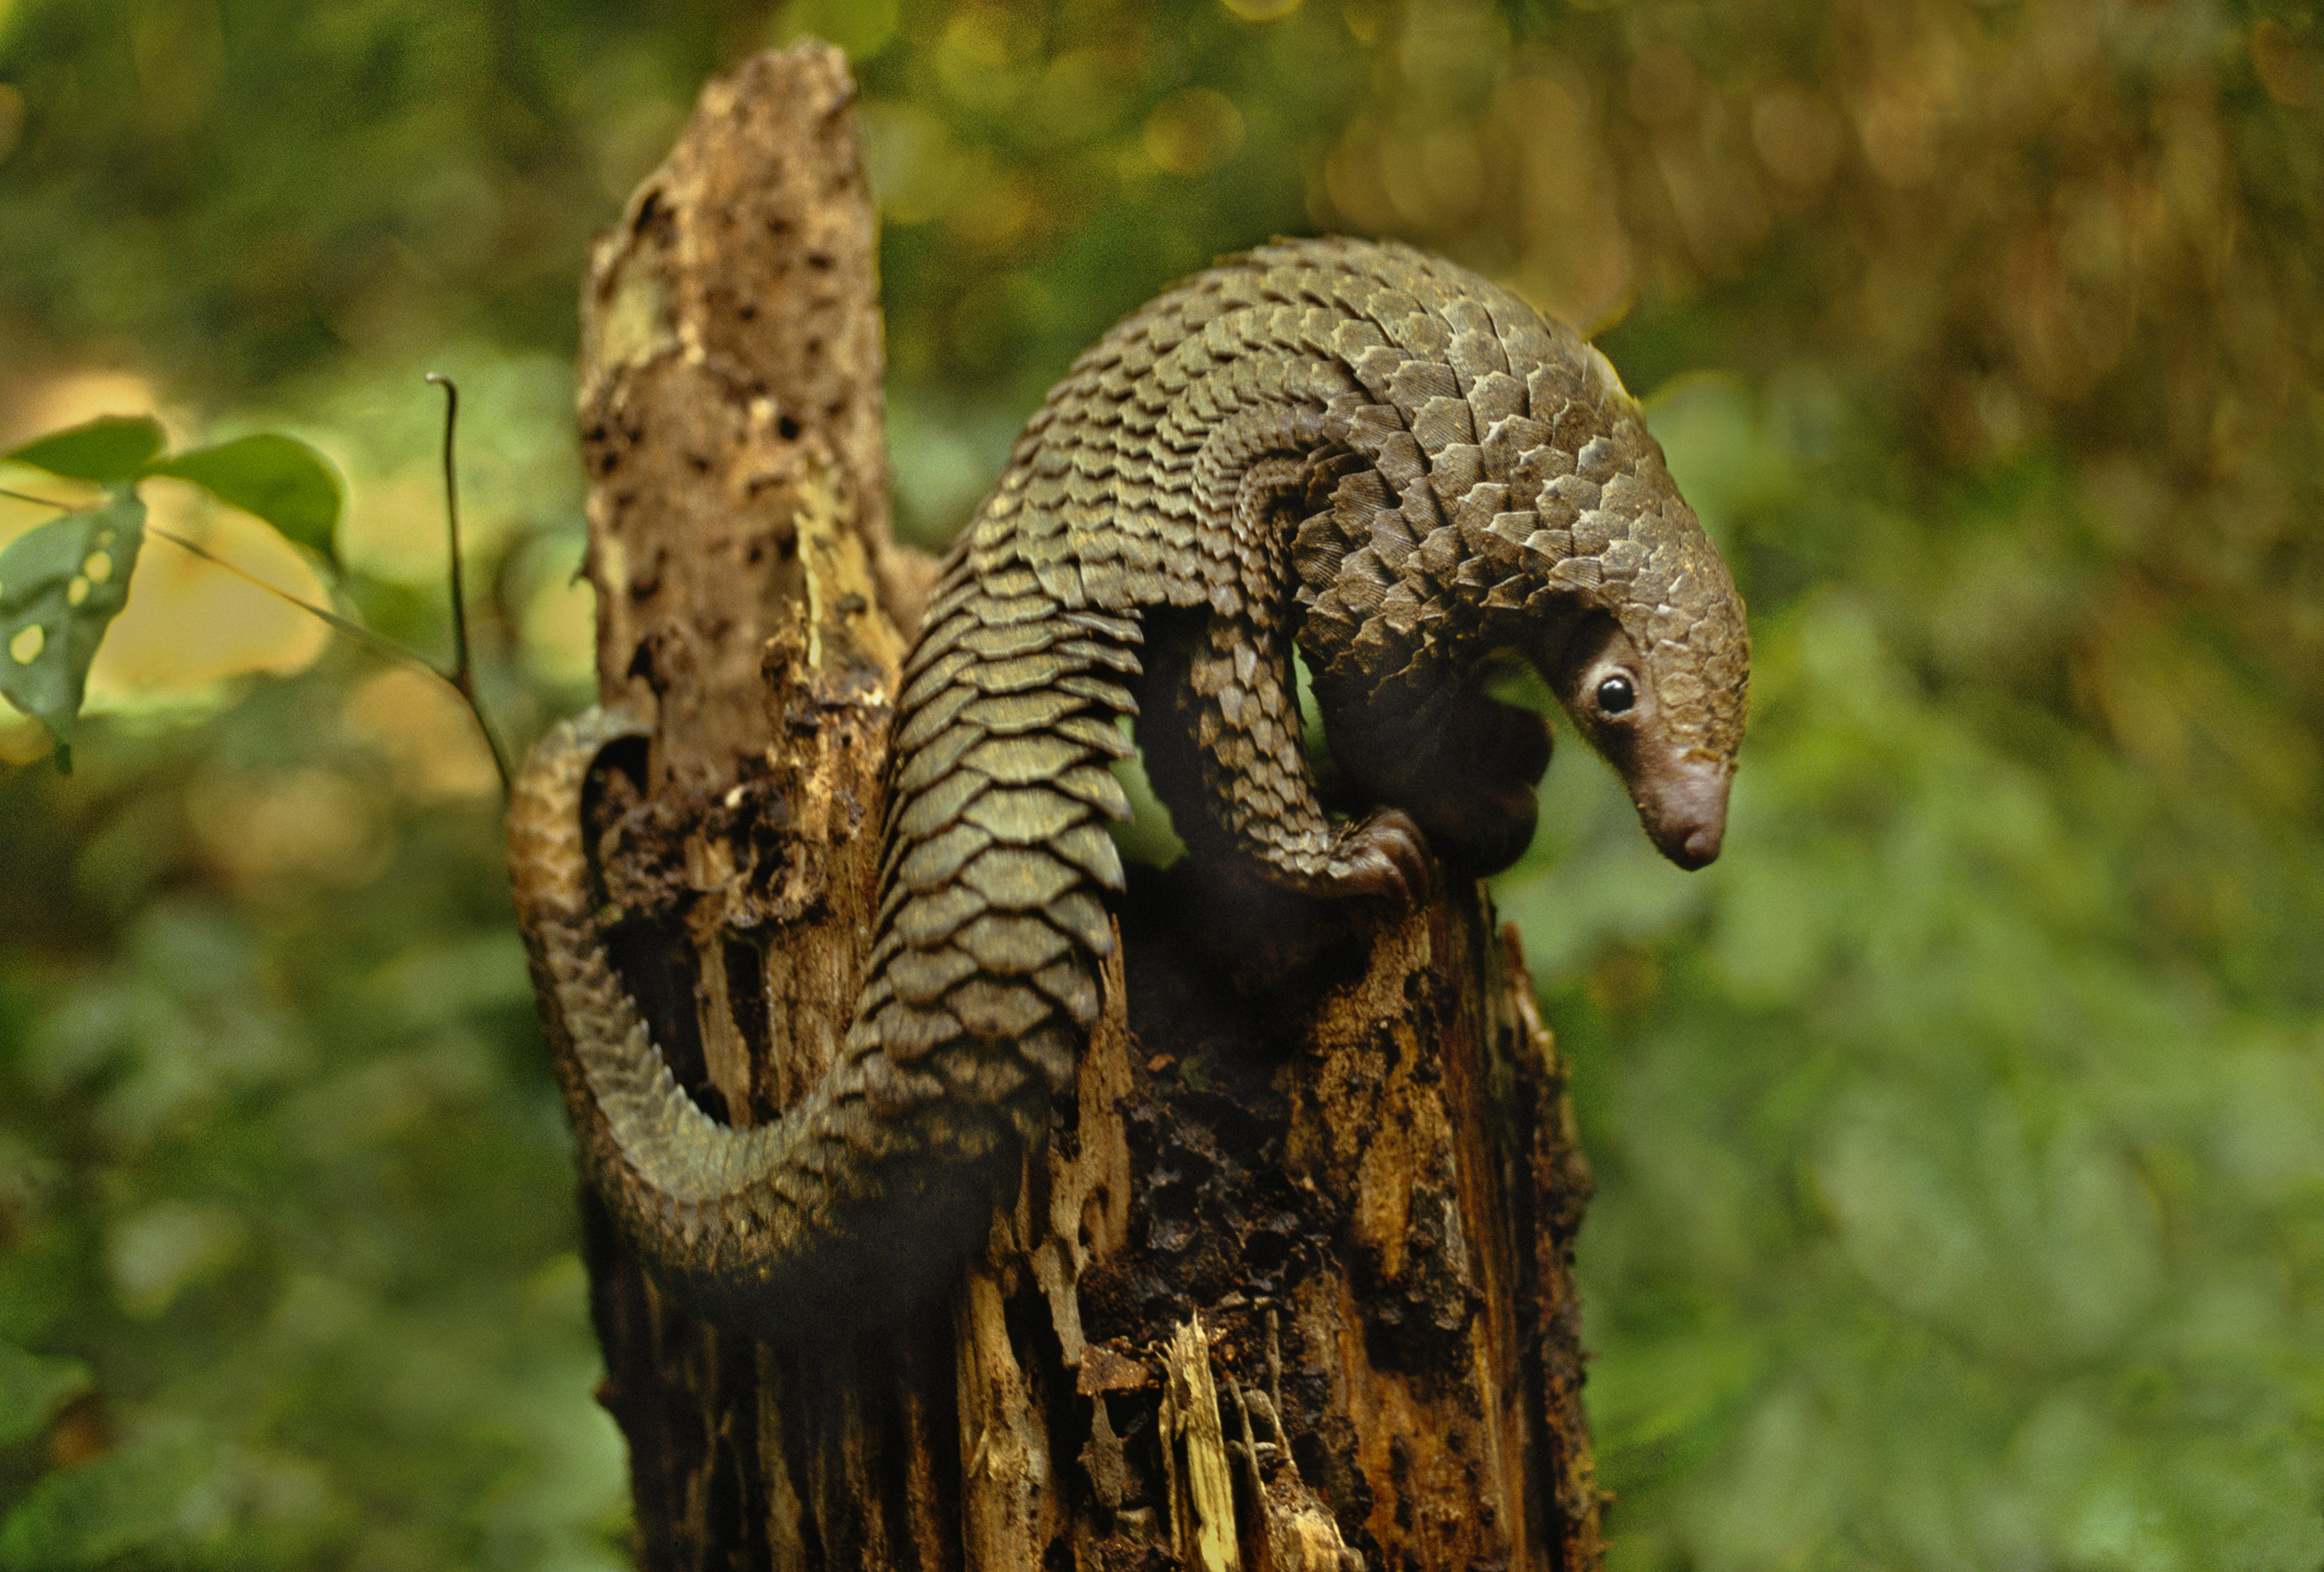 Long-tailed Pangolin, D.R. Congo. Also called scaly anteaters, these solitary, primarily nocturnal animals  are native to both Africa and Asia. Although all eight species of Pangolin are protected, they are valued for their meat and scales, and are often killed and sold illegally. They could possibly be the most trafficked mammal in the world.